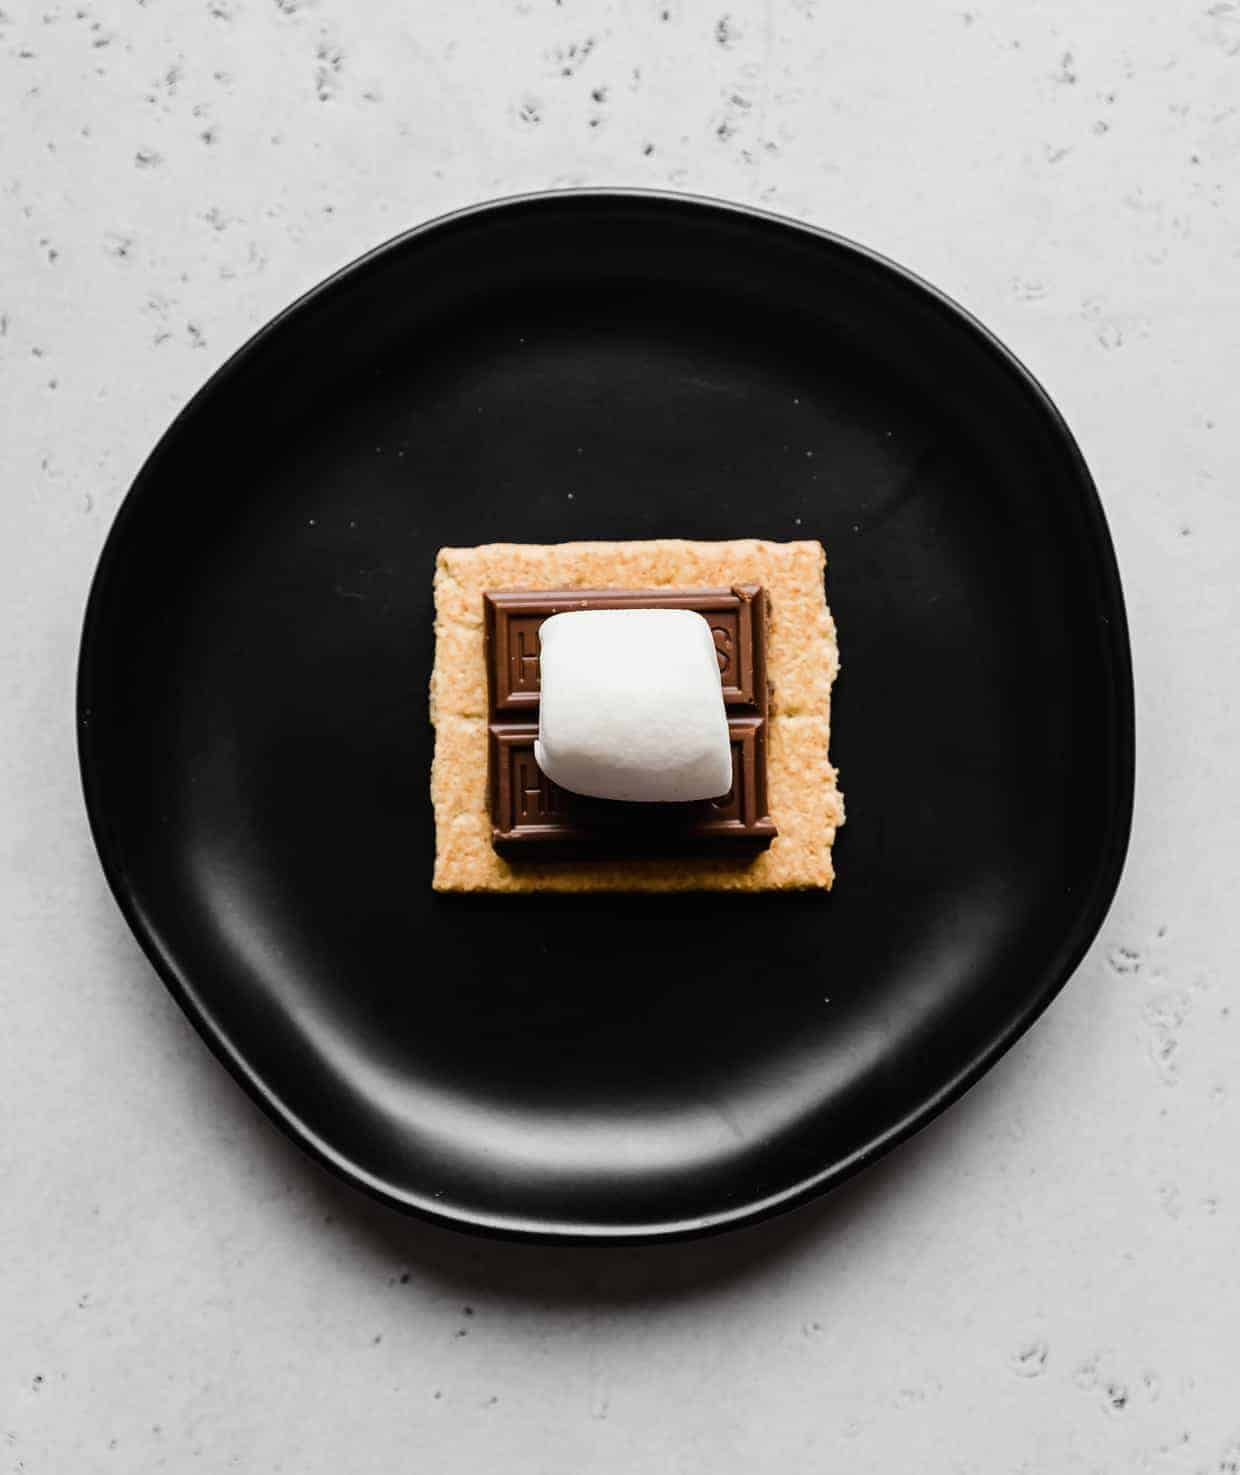 A black plate with a graham cracker square, chocolate piece, and large mallow.